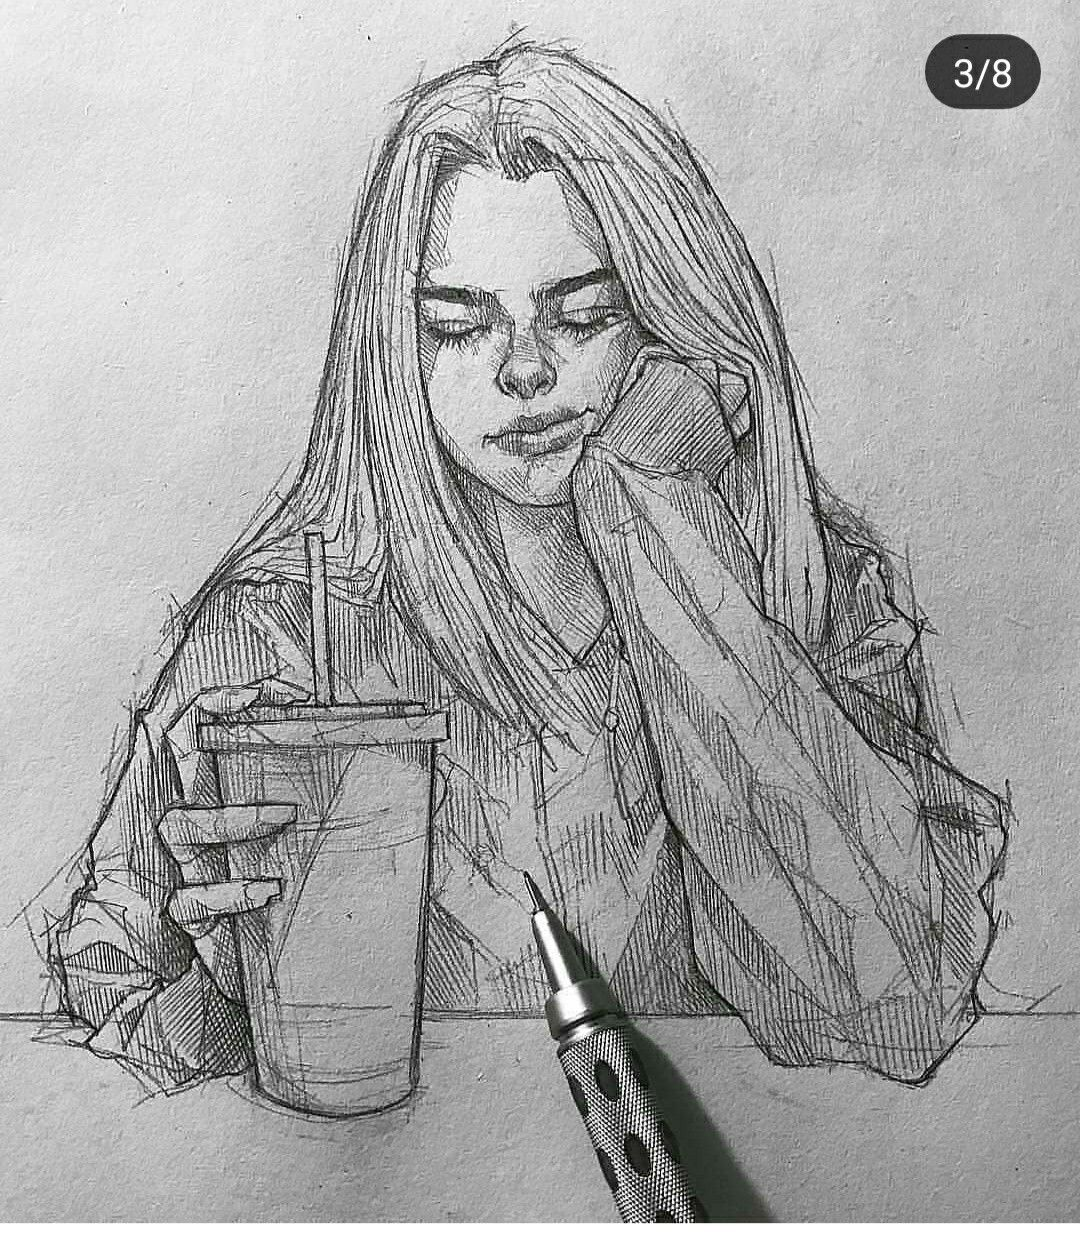 Pin by juliana 🔗 on Art (ღ˘⌣˘ღ) Sketches, Art sketches